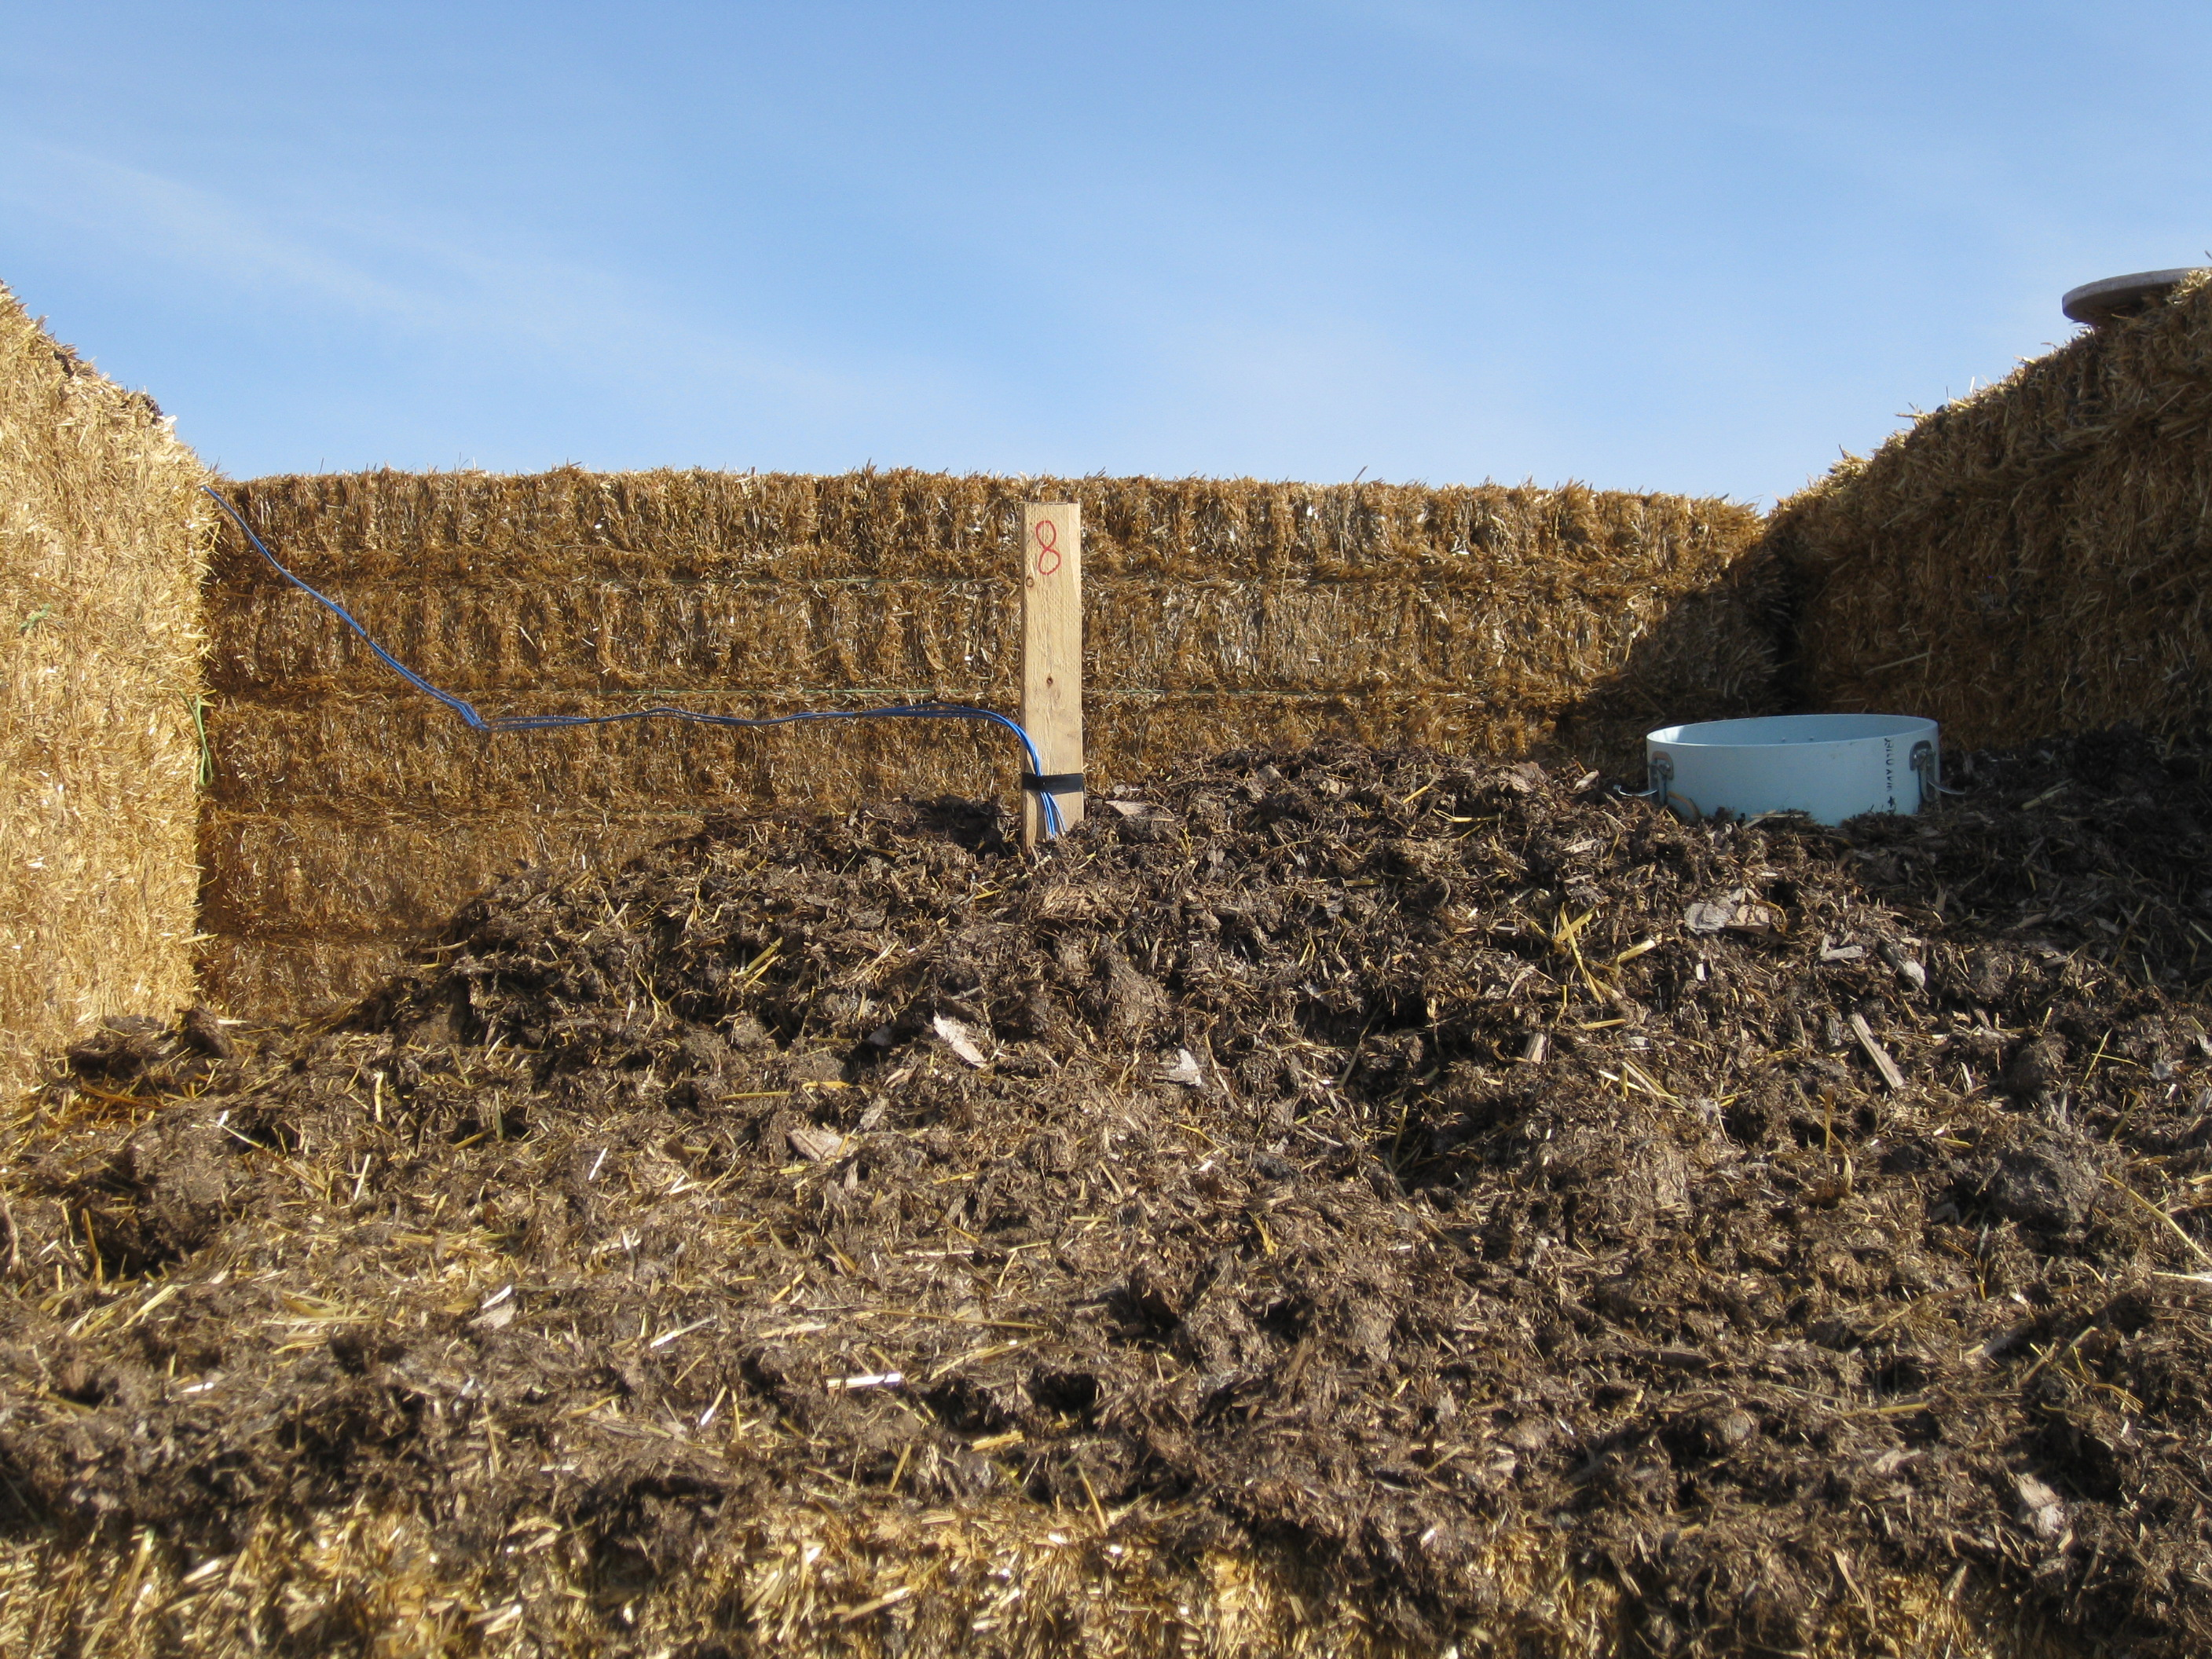 Large straw bales of hay acting as barrier to manure.